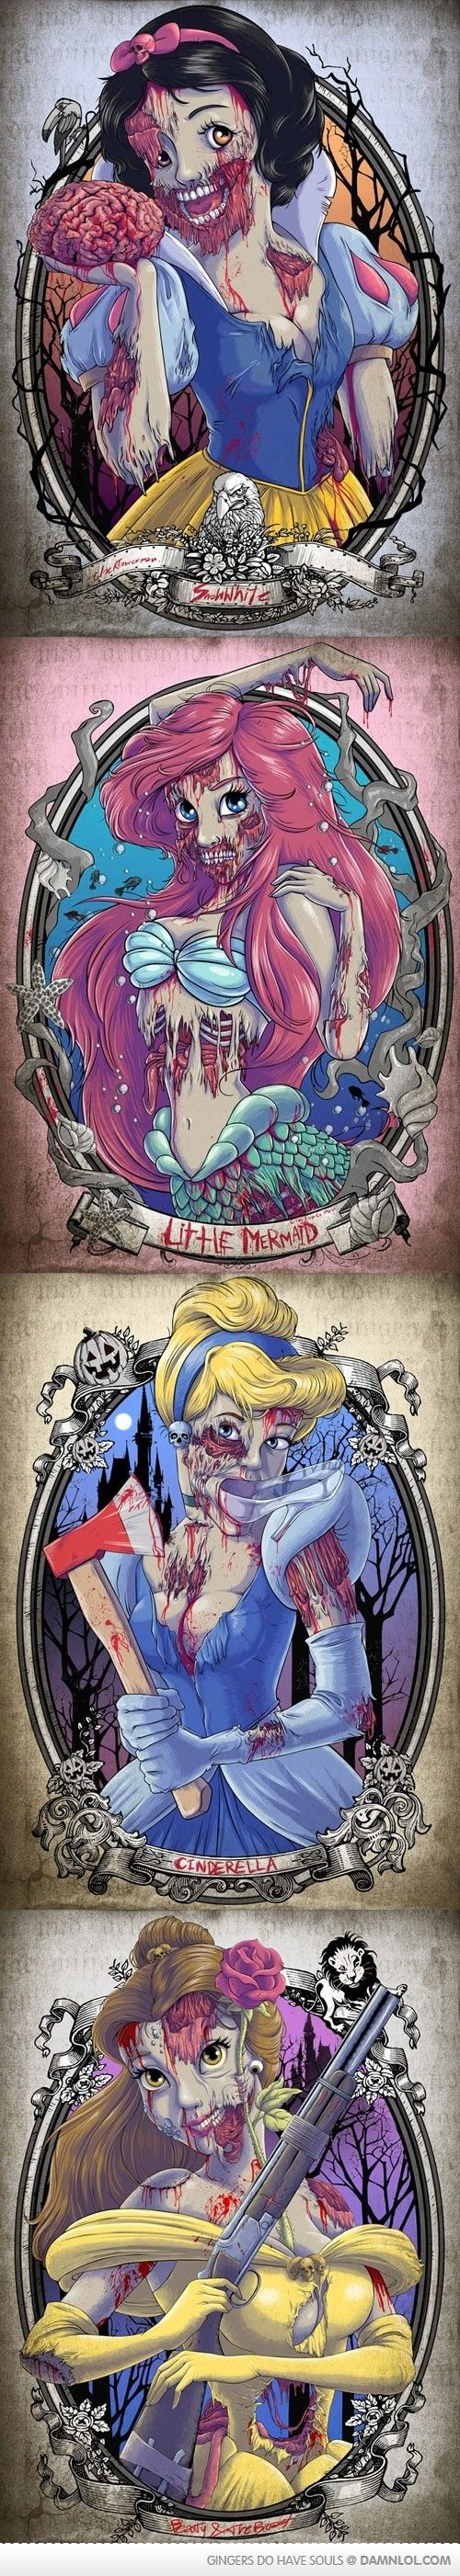 Zombie Disney Princesses that are still somehow pretty...